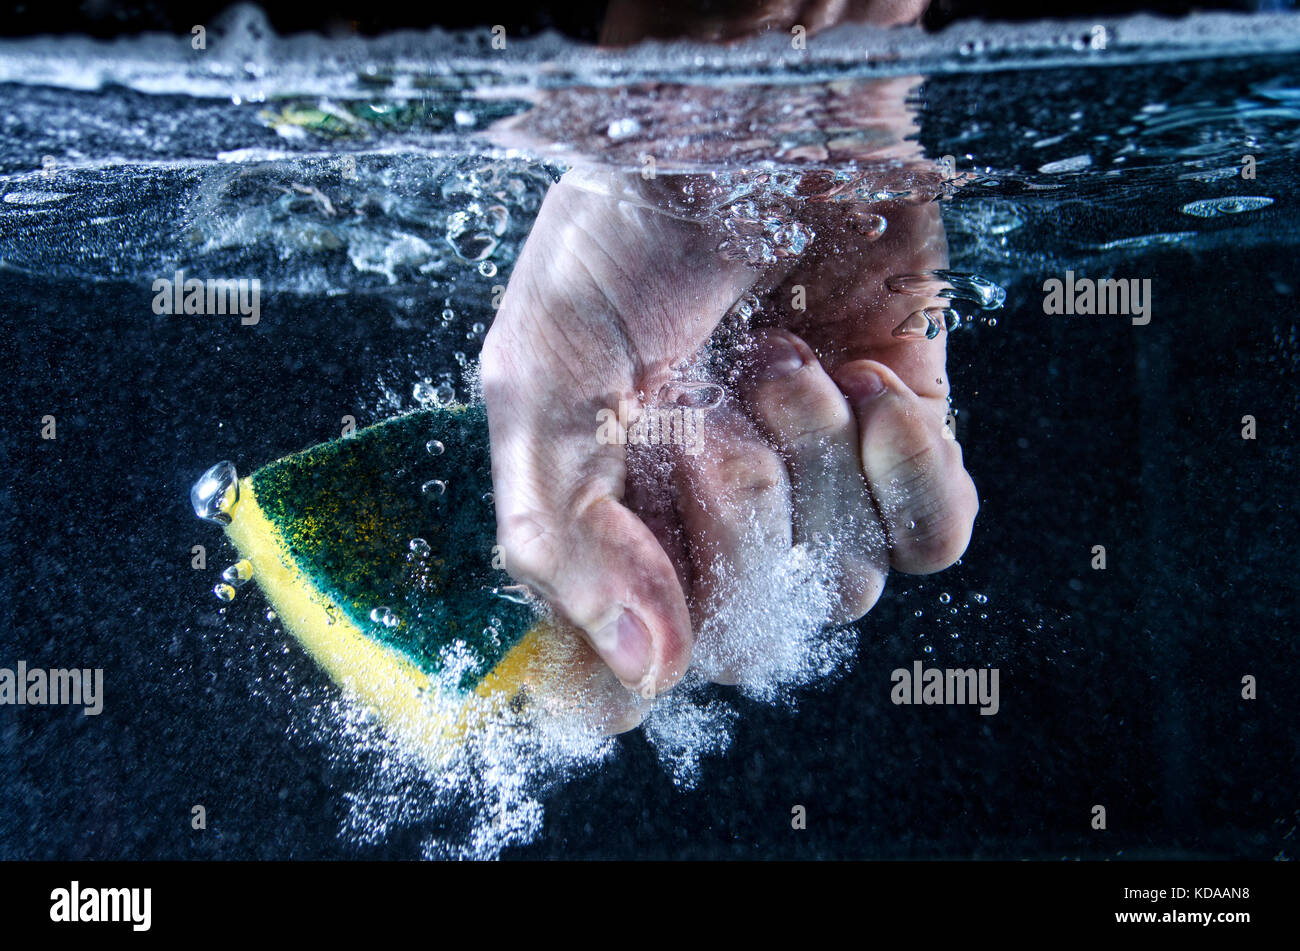 Hand Grabbing Sponge Under Water - Stock Image